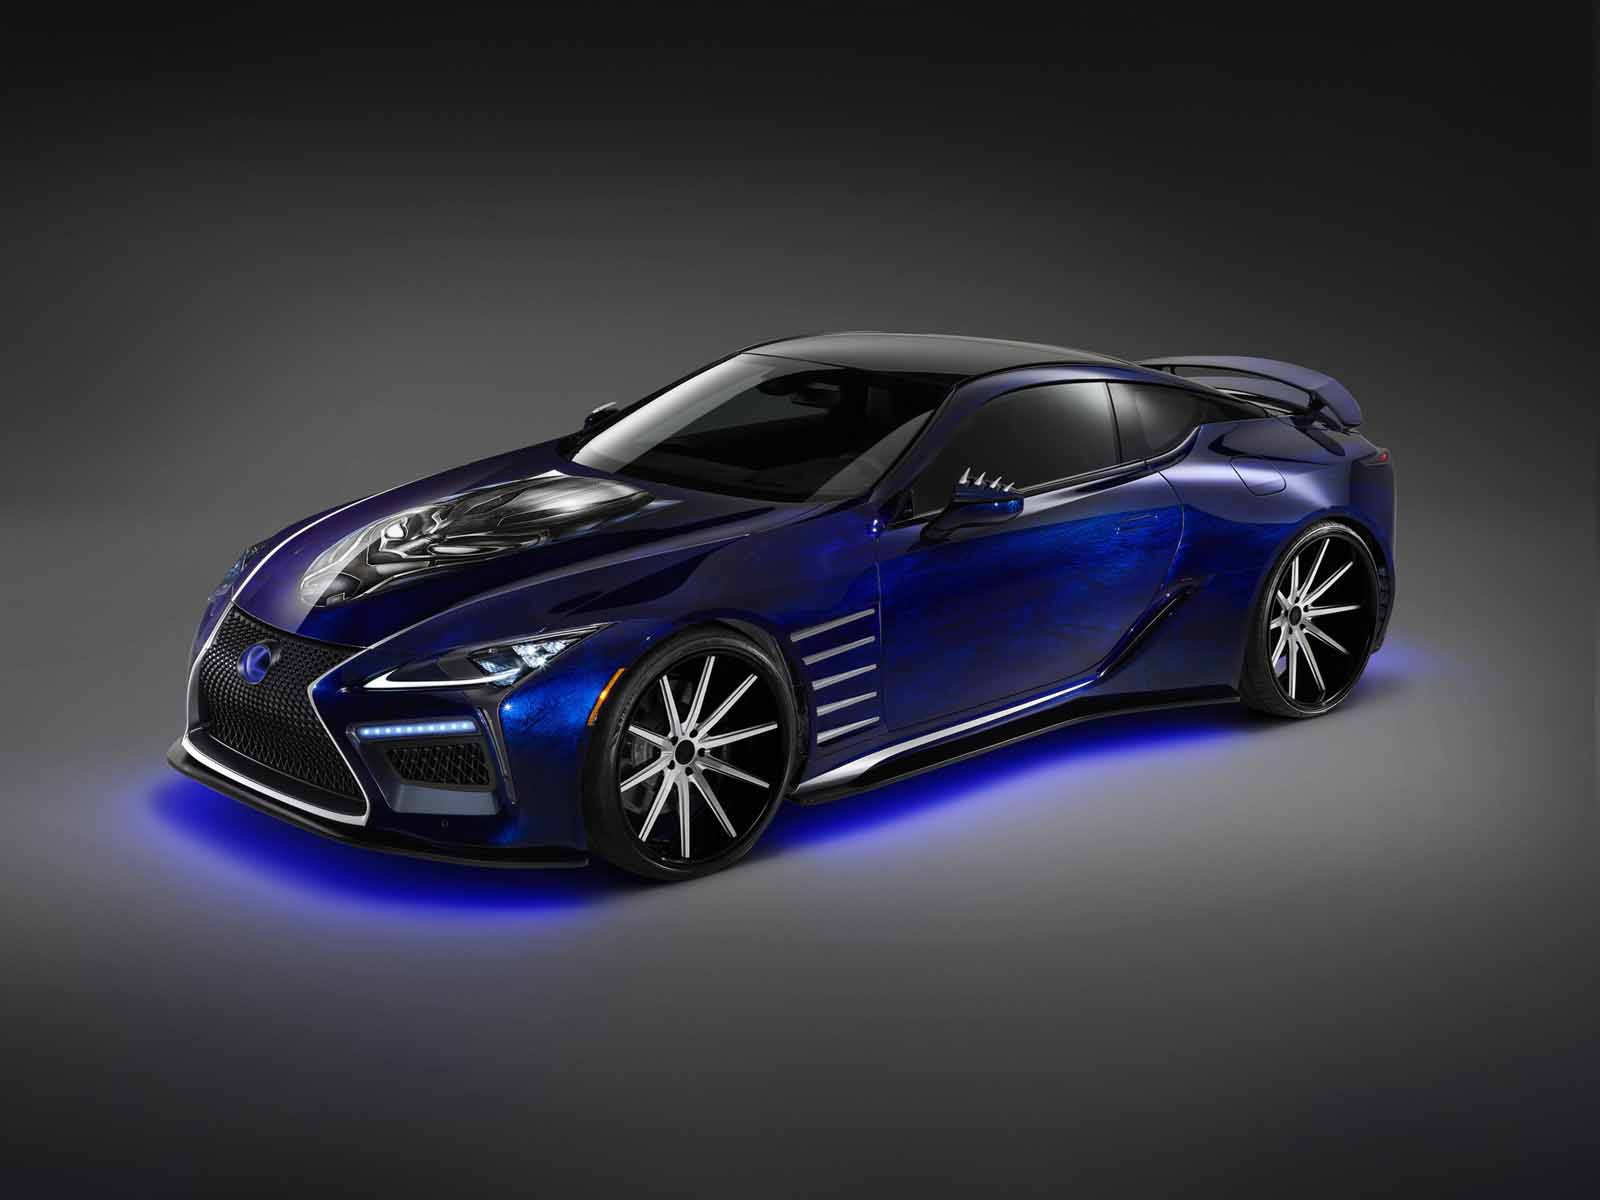 Affordable Auto Insurance >> Lexus is Bringing a Black Panther Inspired LC 500 to SEMA » AutoGuide.com News